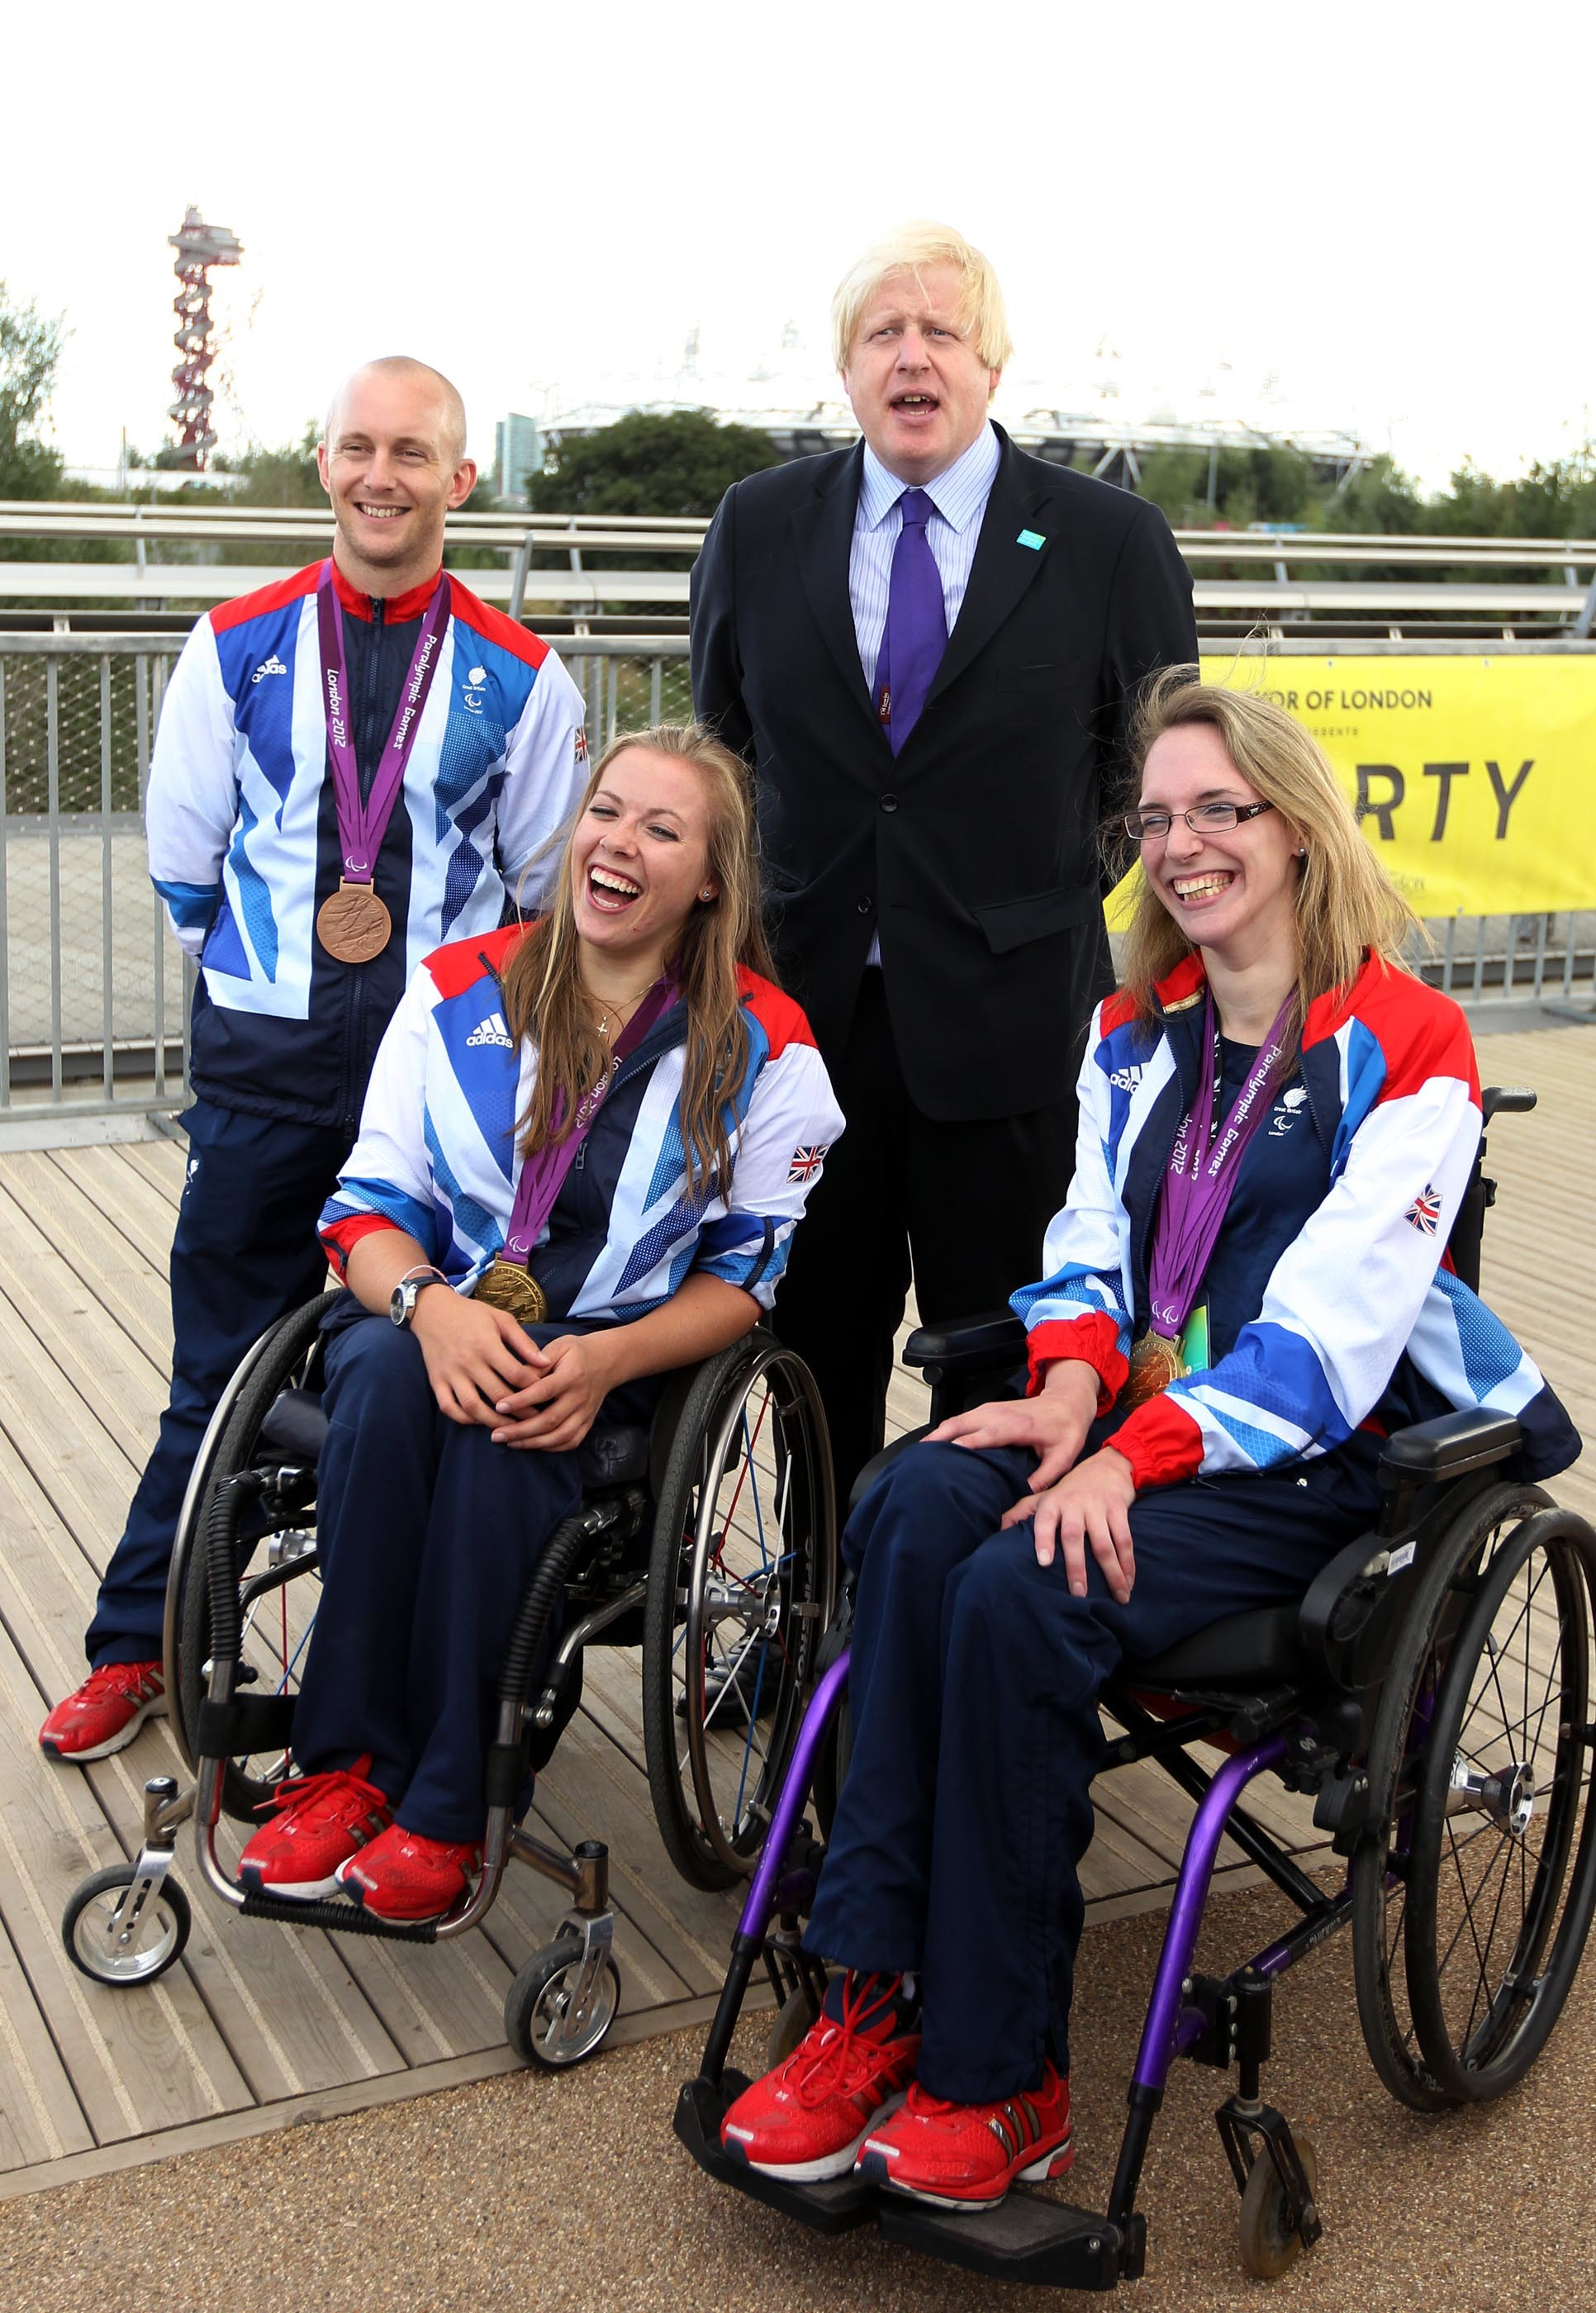 Mayor of London Boris Johnson with Ben Quilter (left) Hannah Cockcroft (2nd left) and Sophie Christiansen (right) at the National Paralympic Day in the Queen Elizabeth Olympic park in Stratford, where he was presented the Paralympic order by the International Paralympic committee. PRESS ASSOCIATION Photo. Picture date: Saturday September 7, 2013. See PA story SPORT Paralympics. Photo credit should read: Sean Dempsey/PA Wire